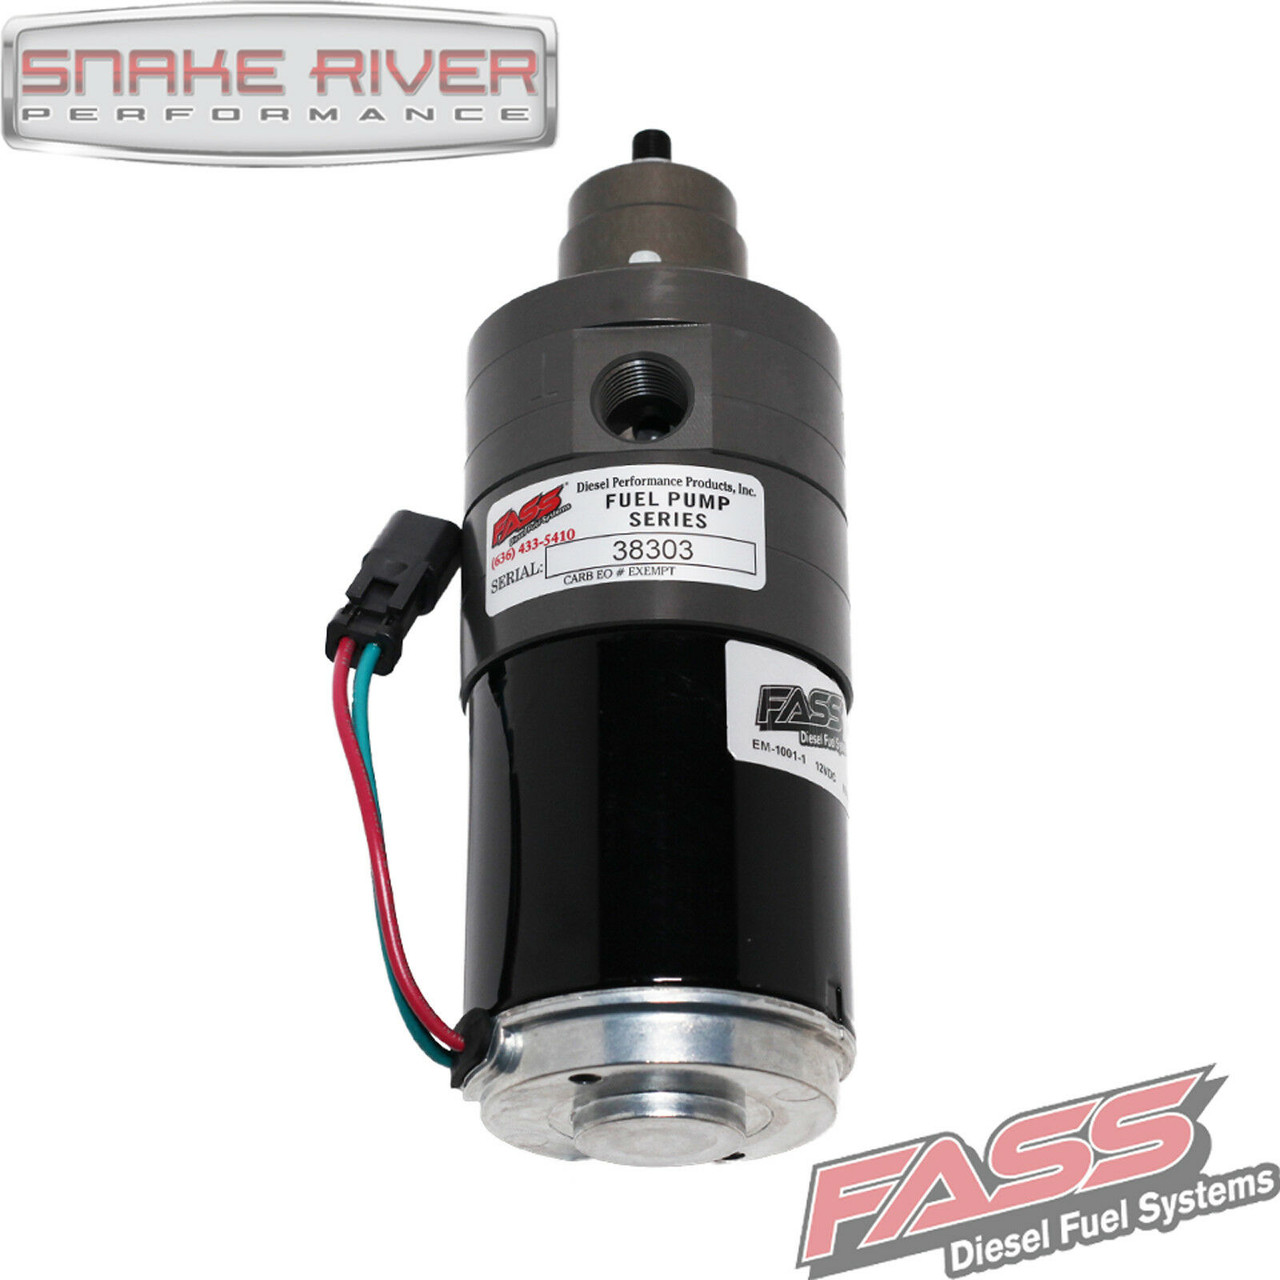 FASS ADJUSTABLE FUEL PUMP 11-16 FORD POWERSTROKE F250/F350 DIESEL 6.7L 240 GPH